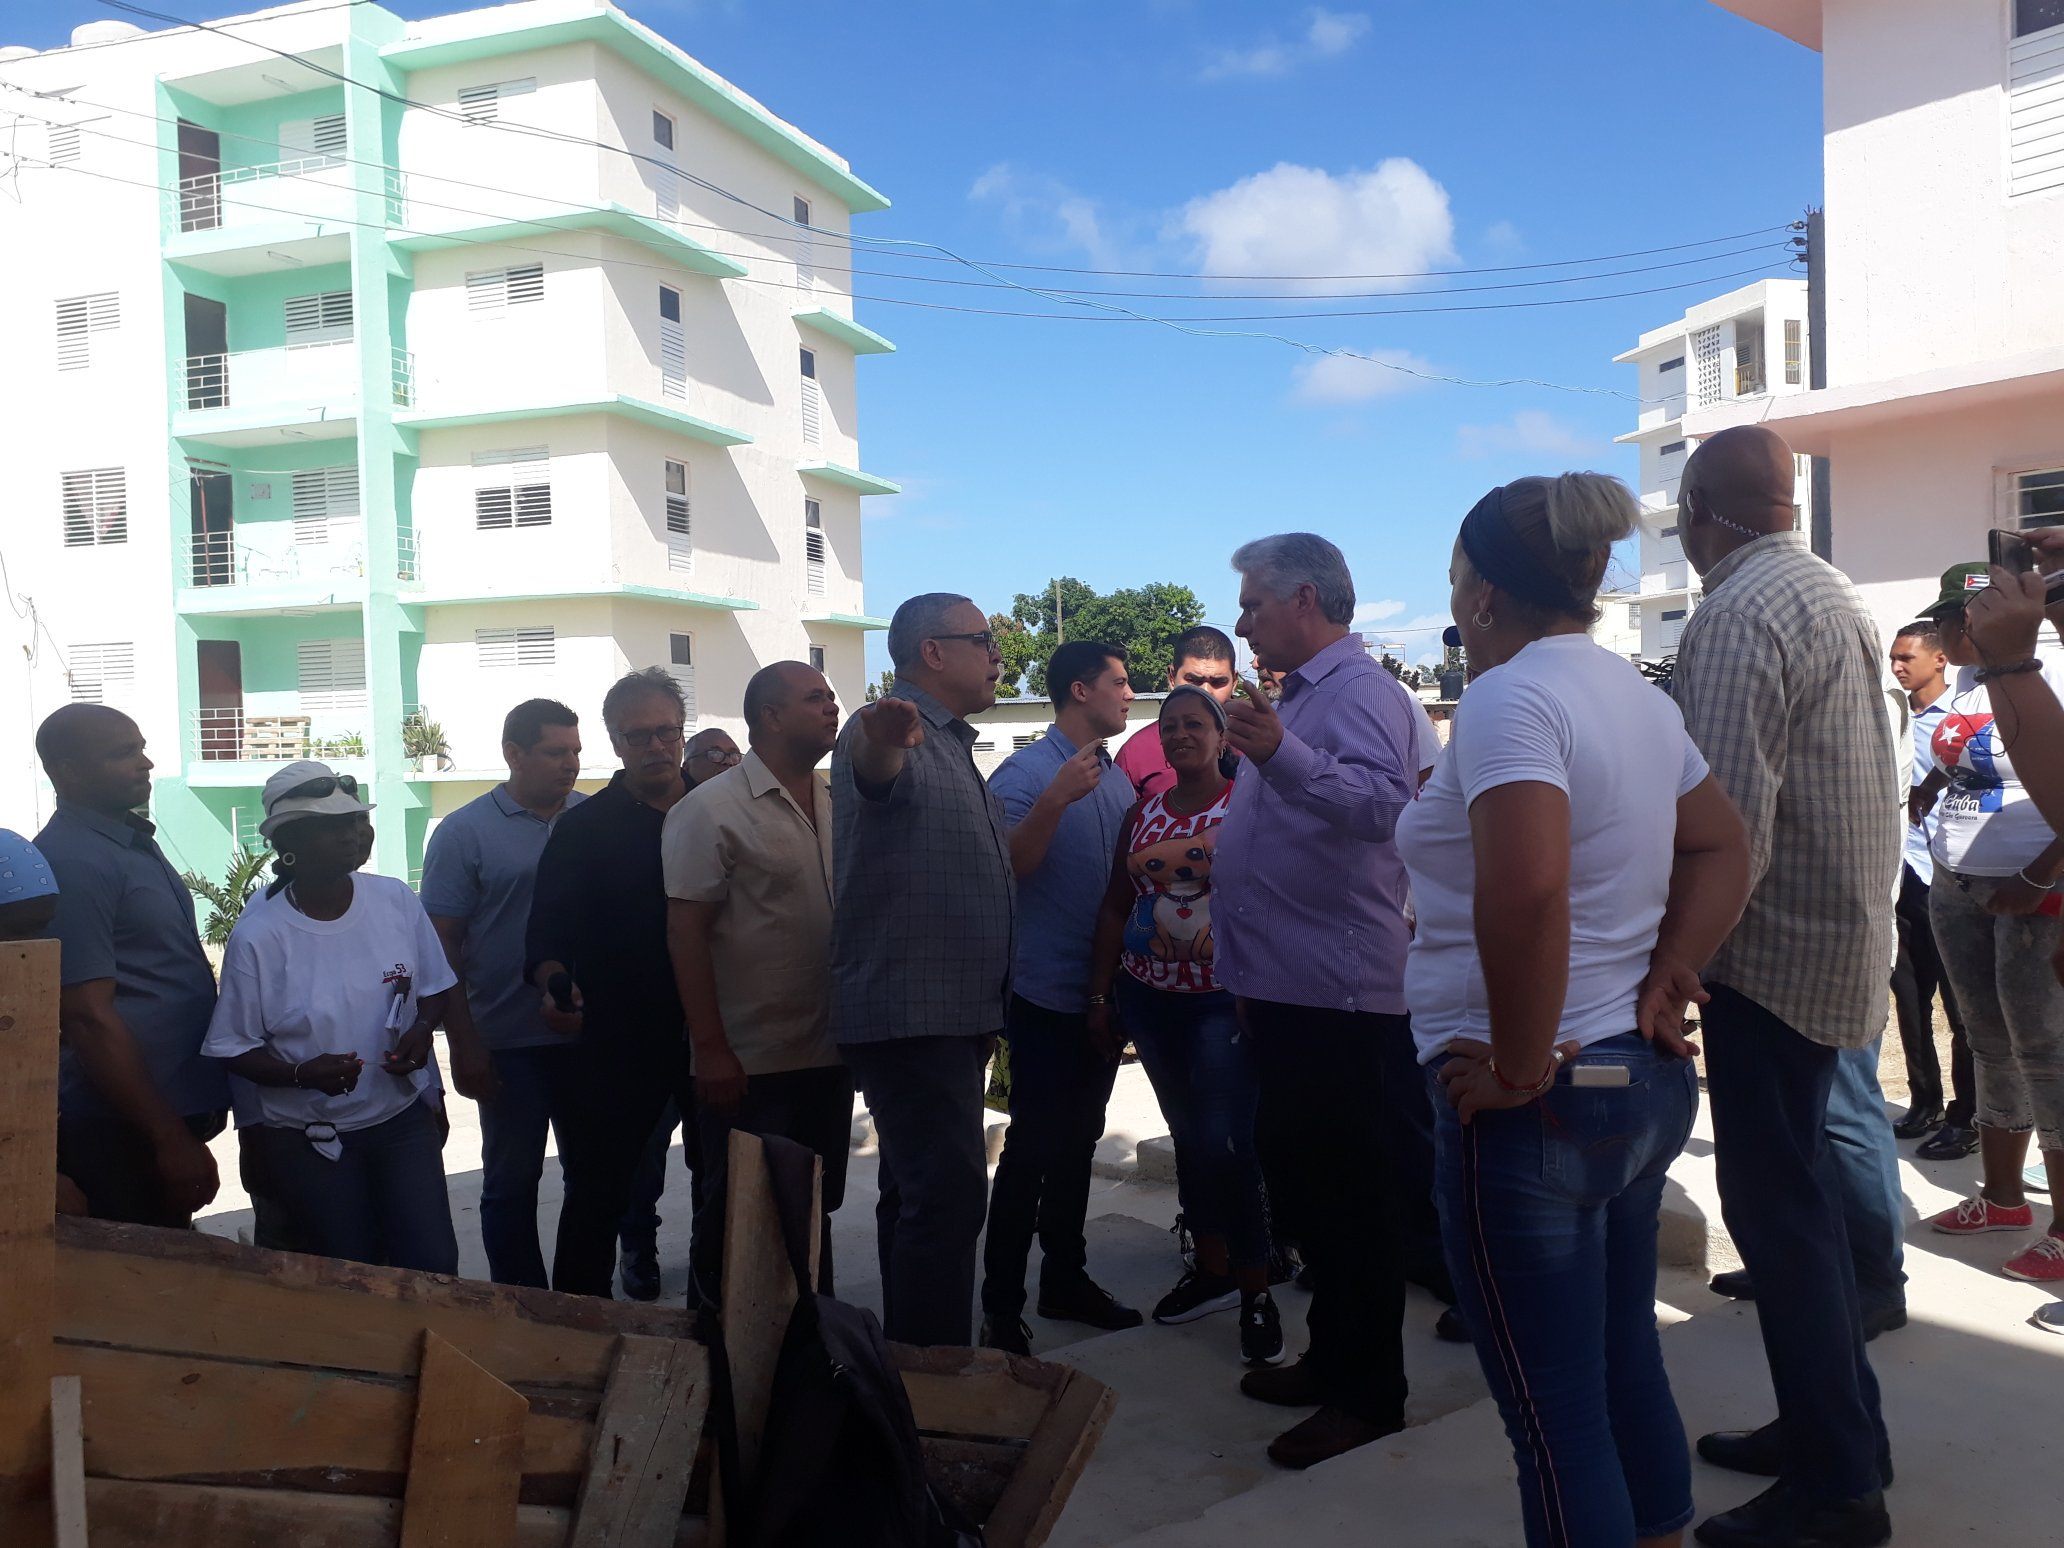 Diaz-Canel presided over ceremony of housing delivery to families affected by the tornado in Havana